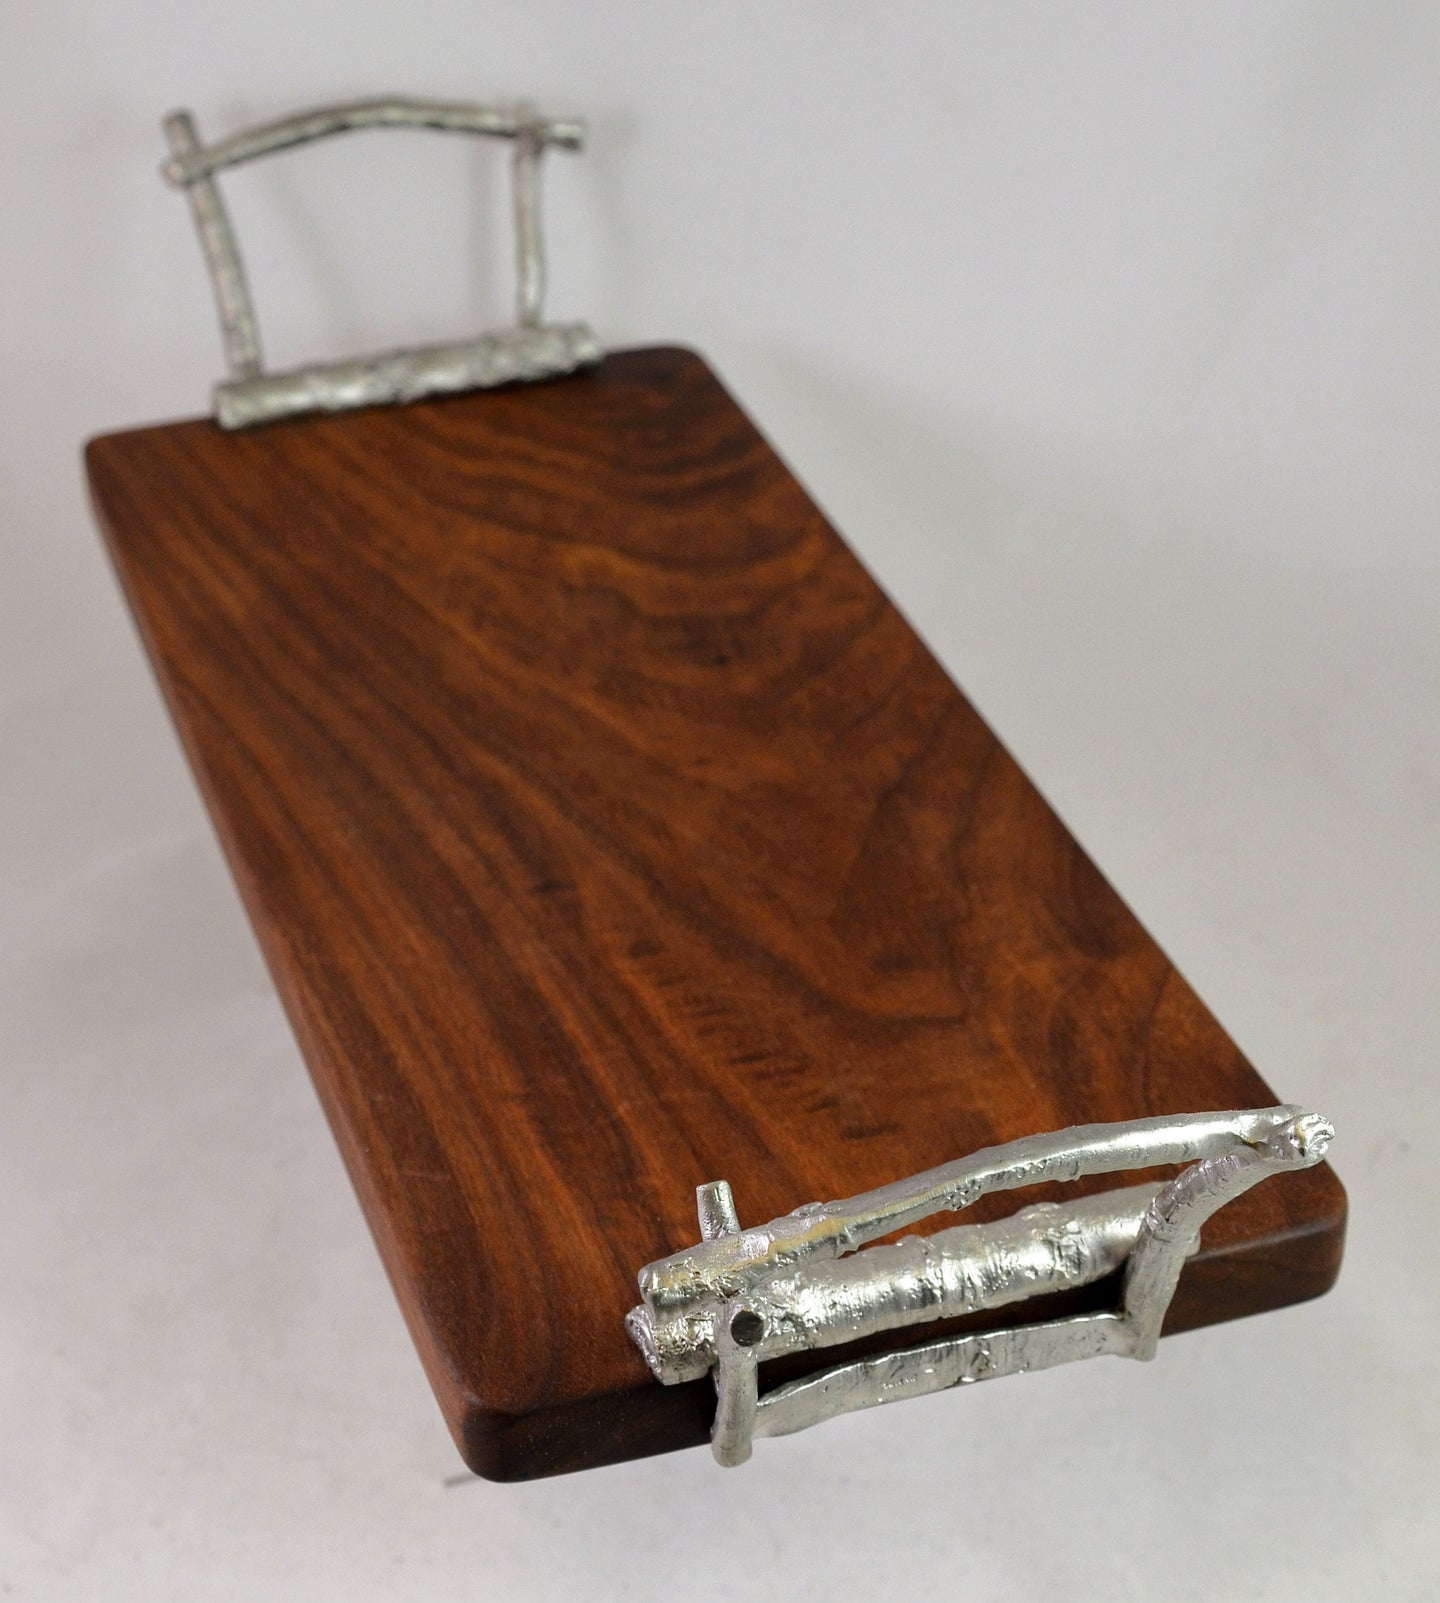 Serving board with silver handles by Michael Michaud